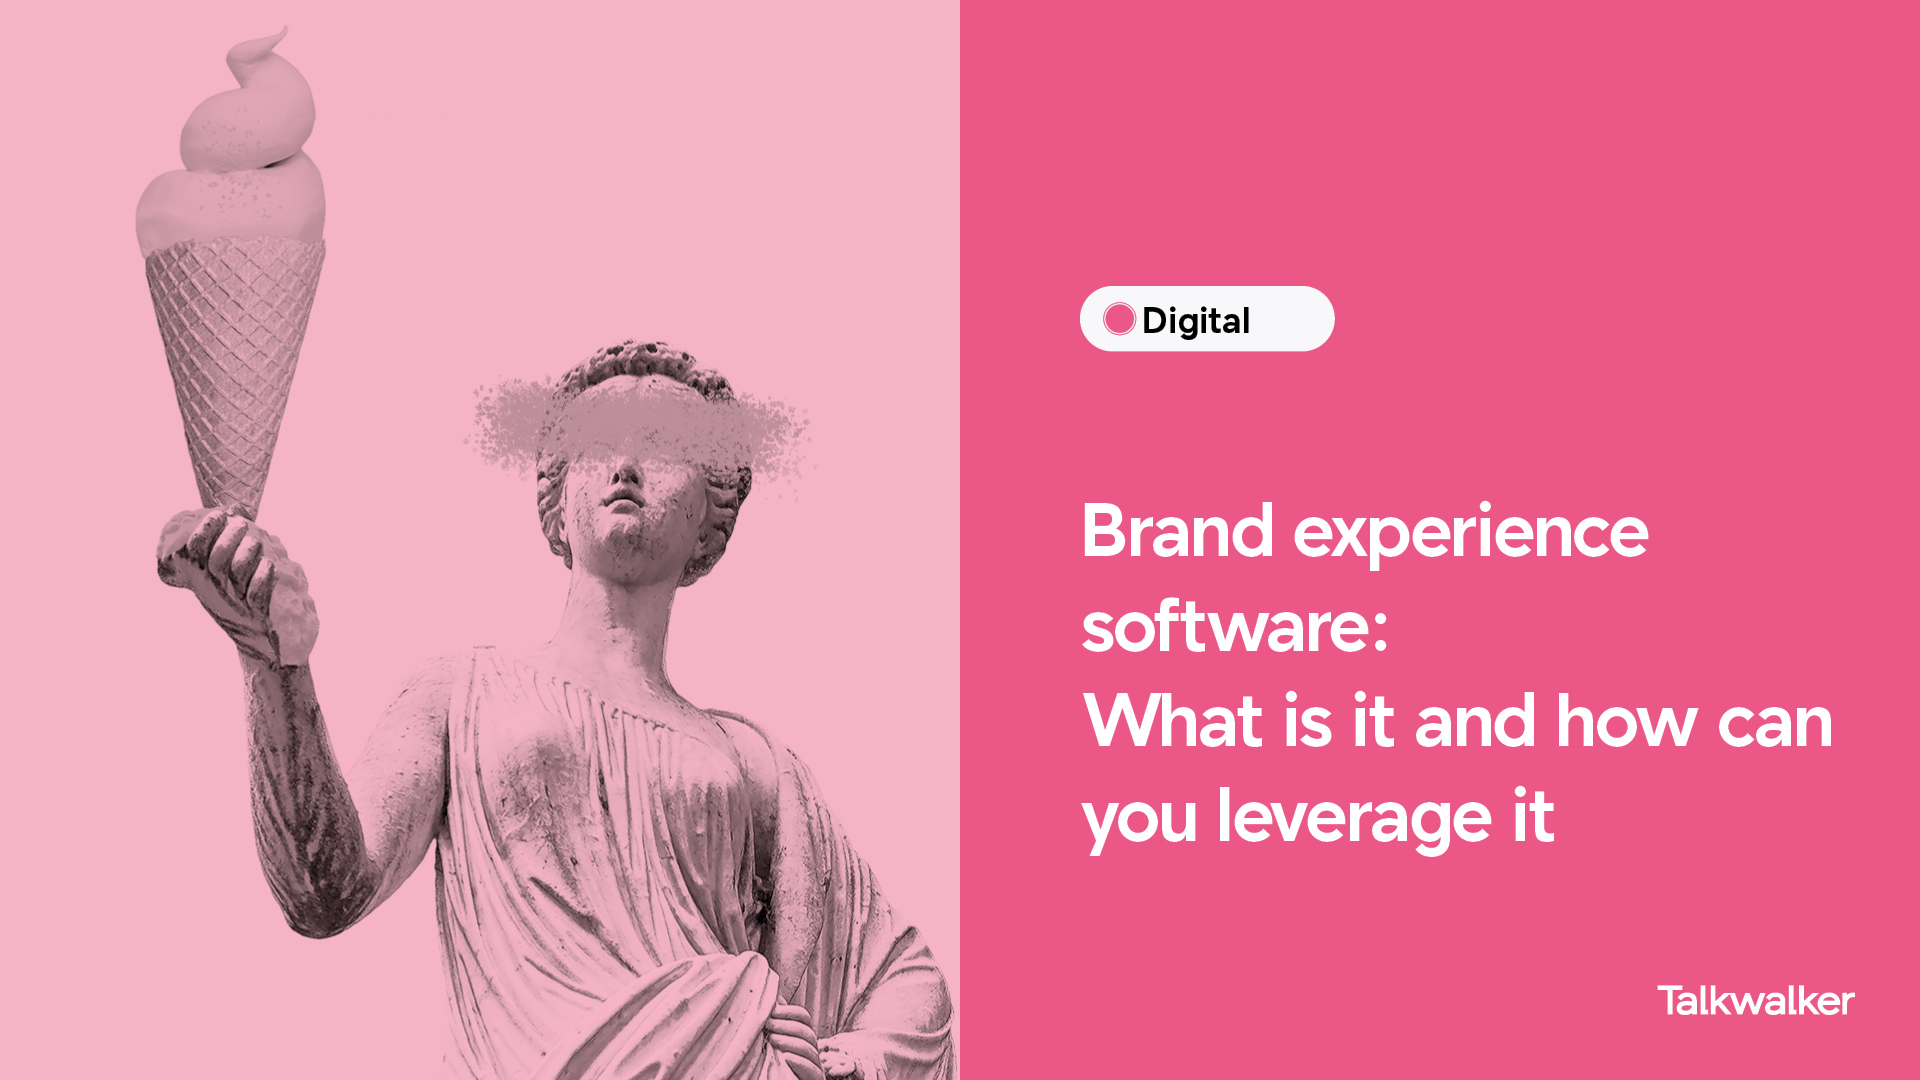 The best brand experience software